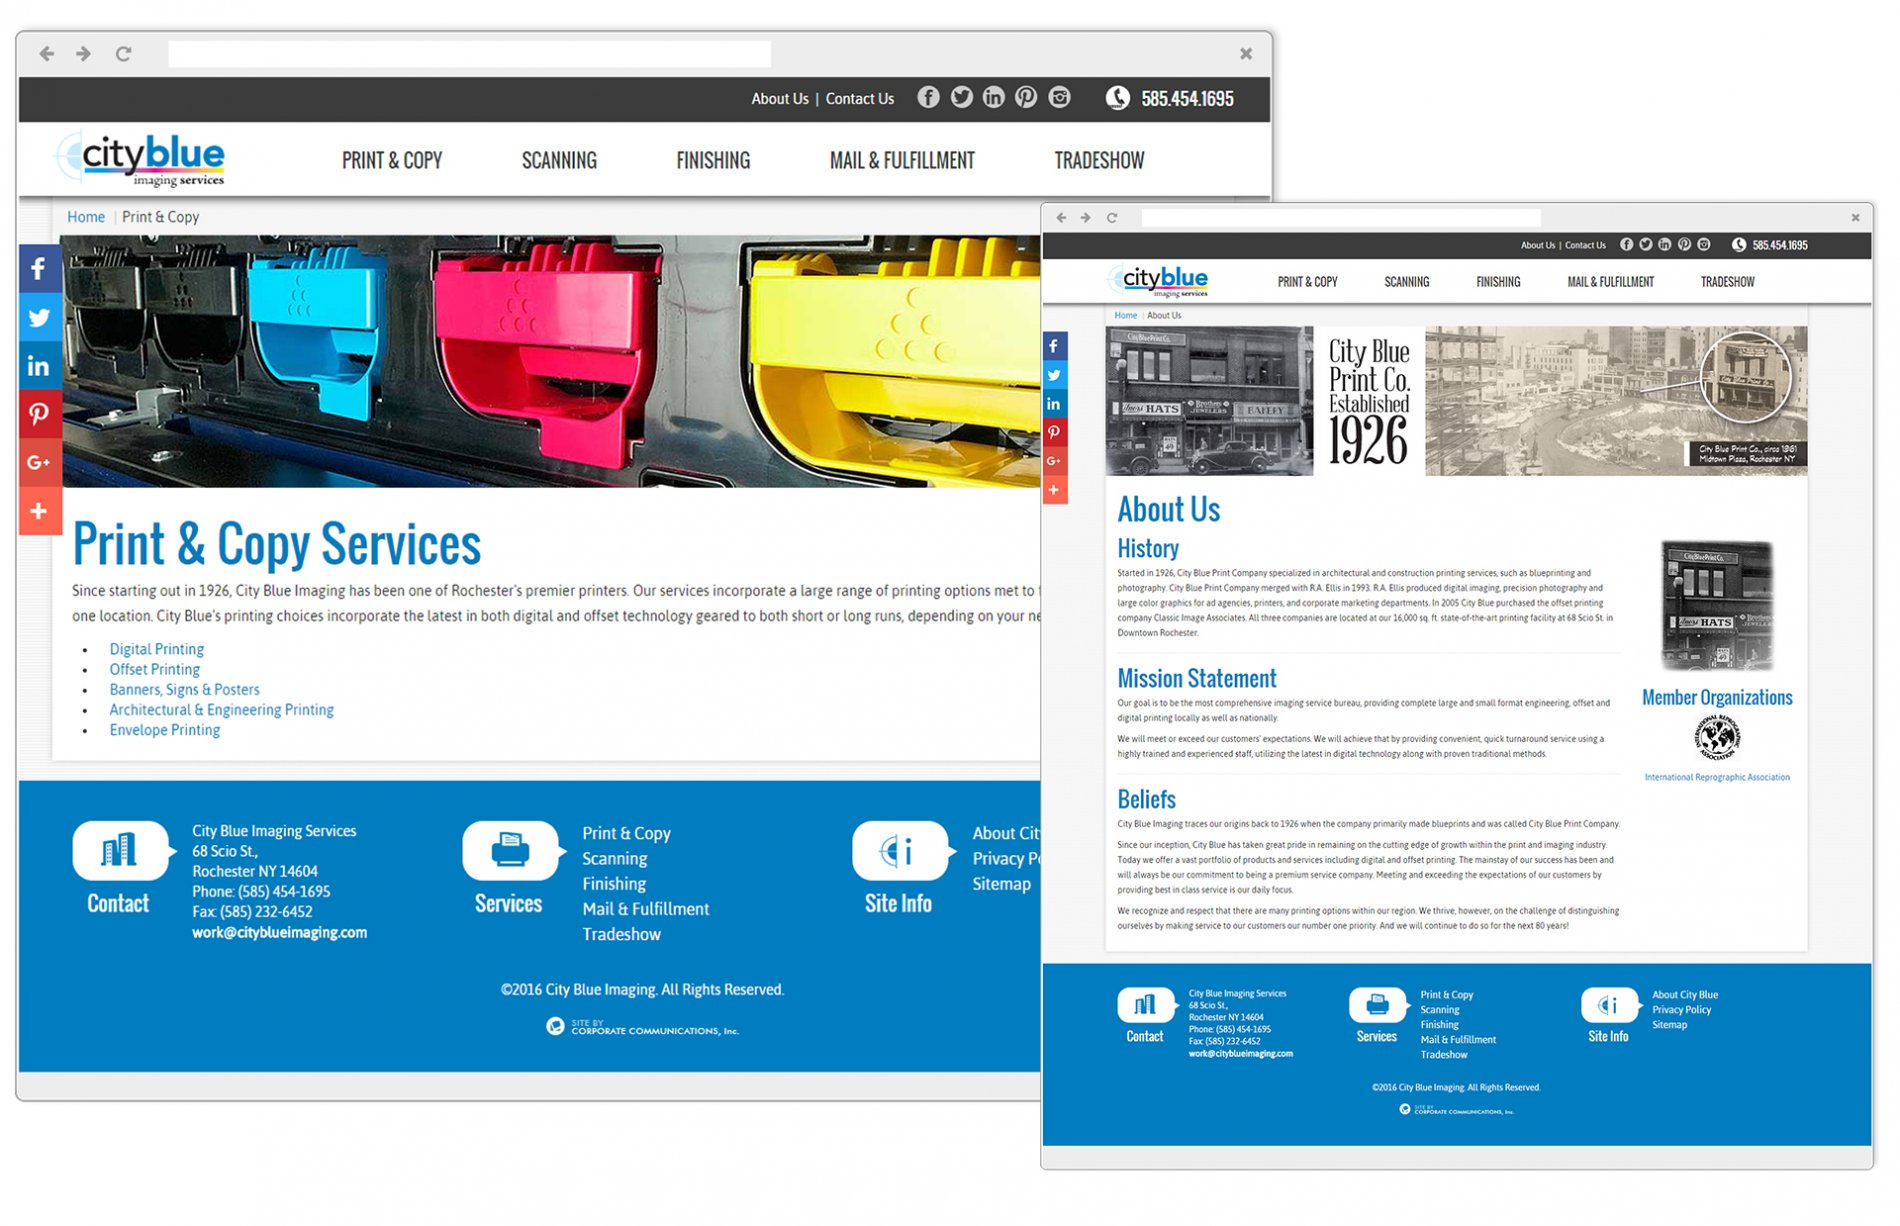 Comprehensive Service & About Us Pages